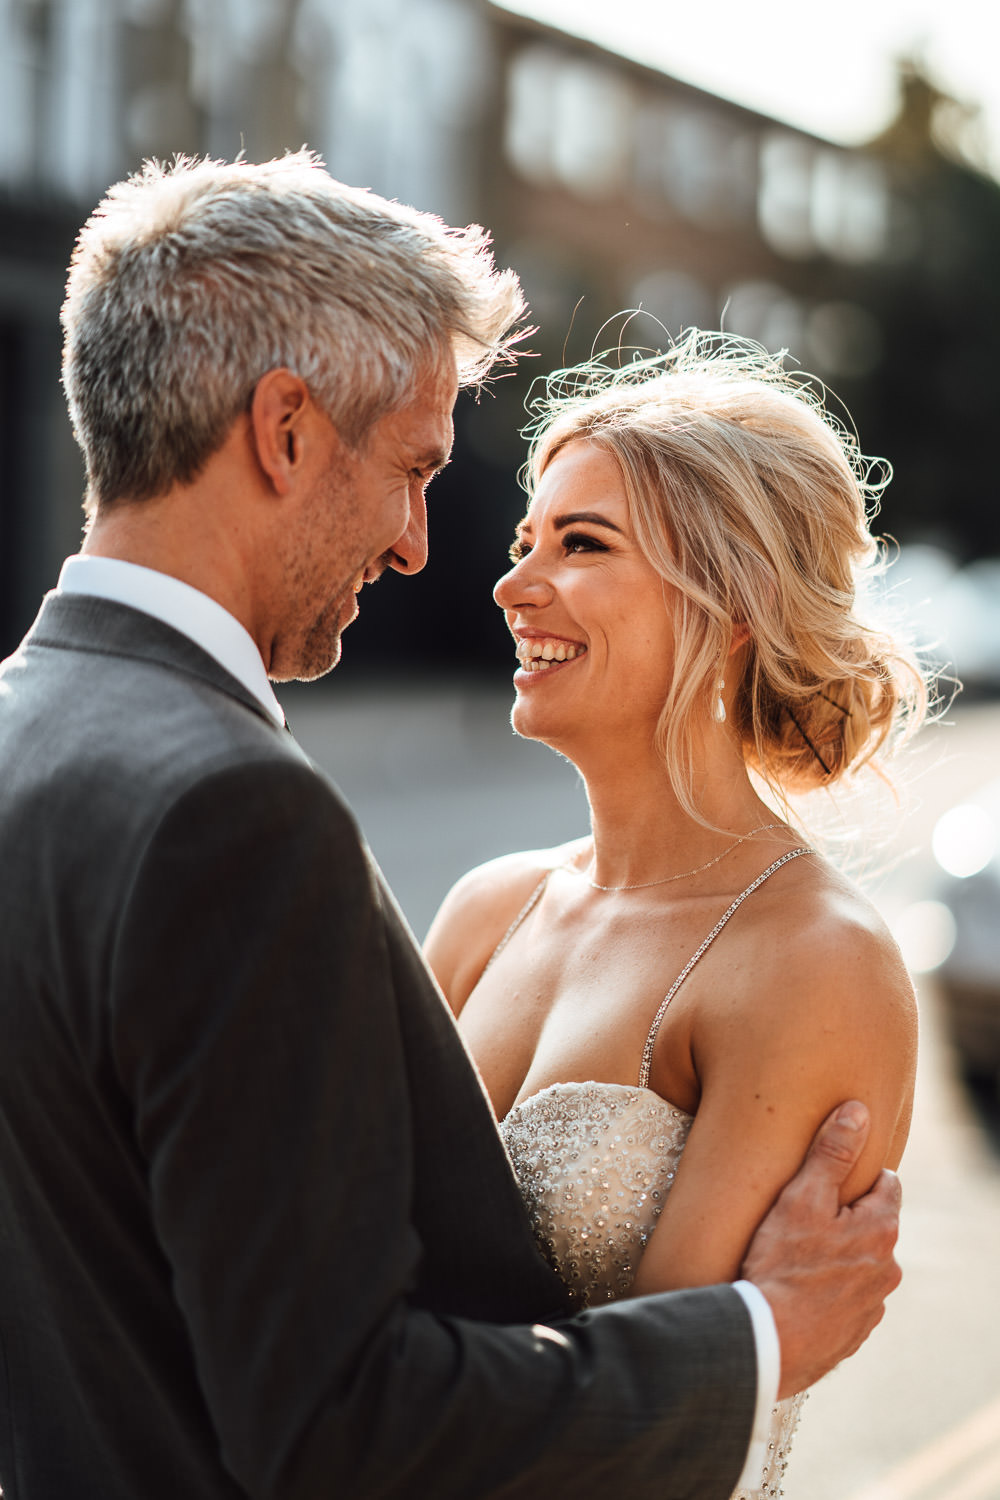 couples portraits in dalston pub wedding by london wedding photographer the shannons photography